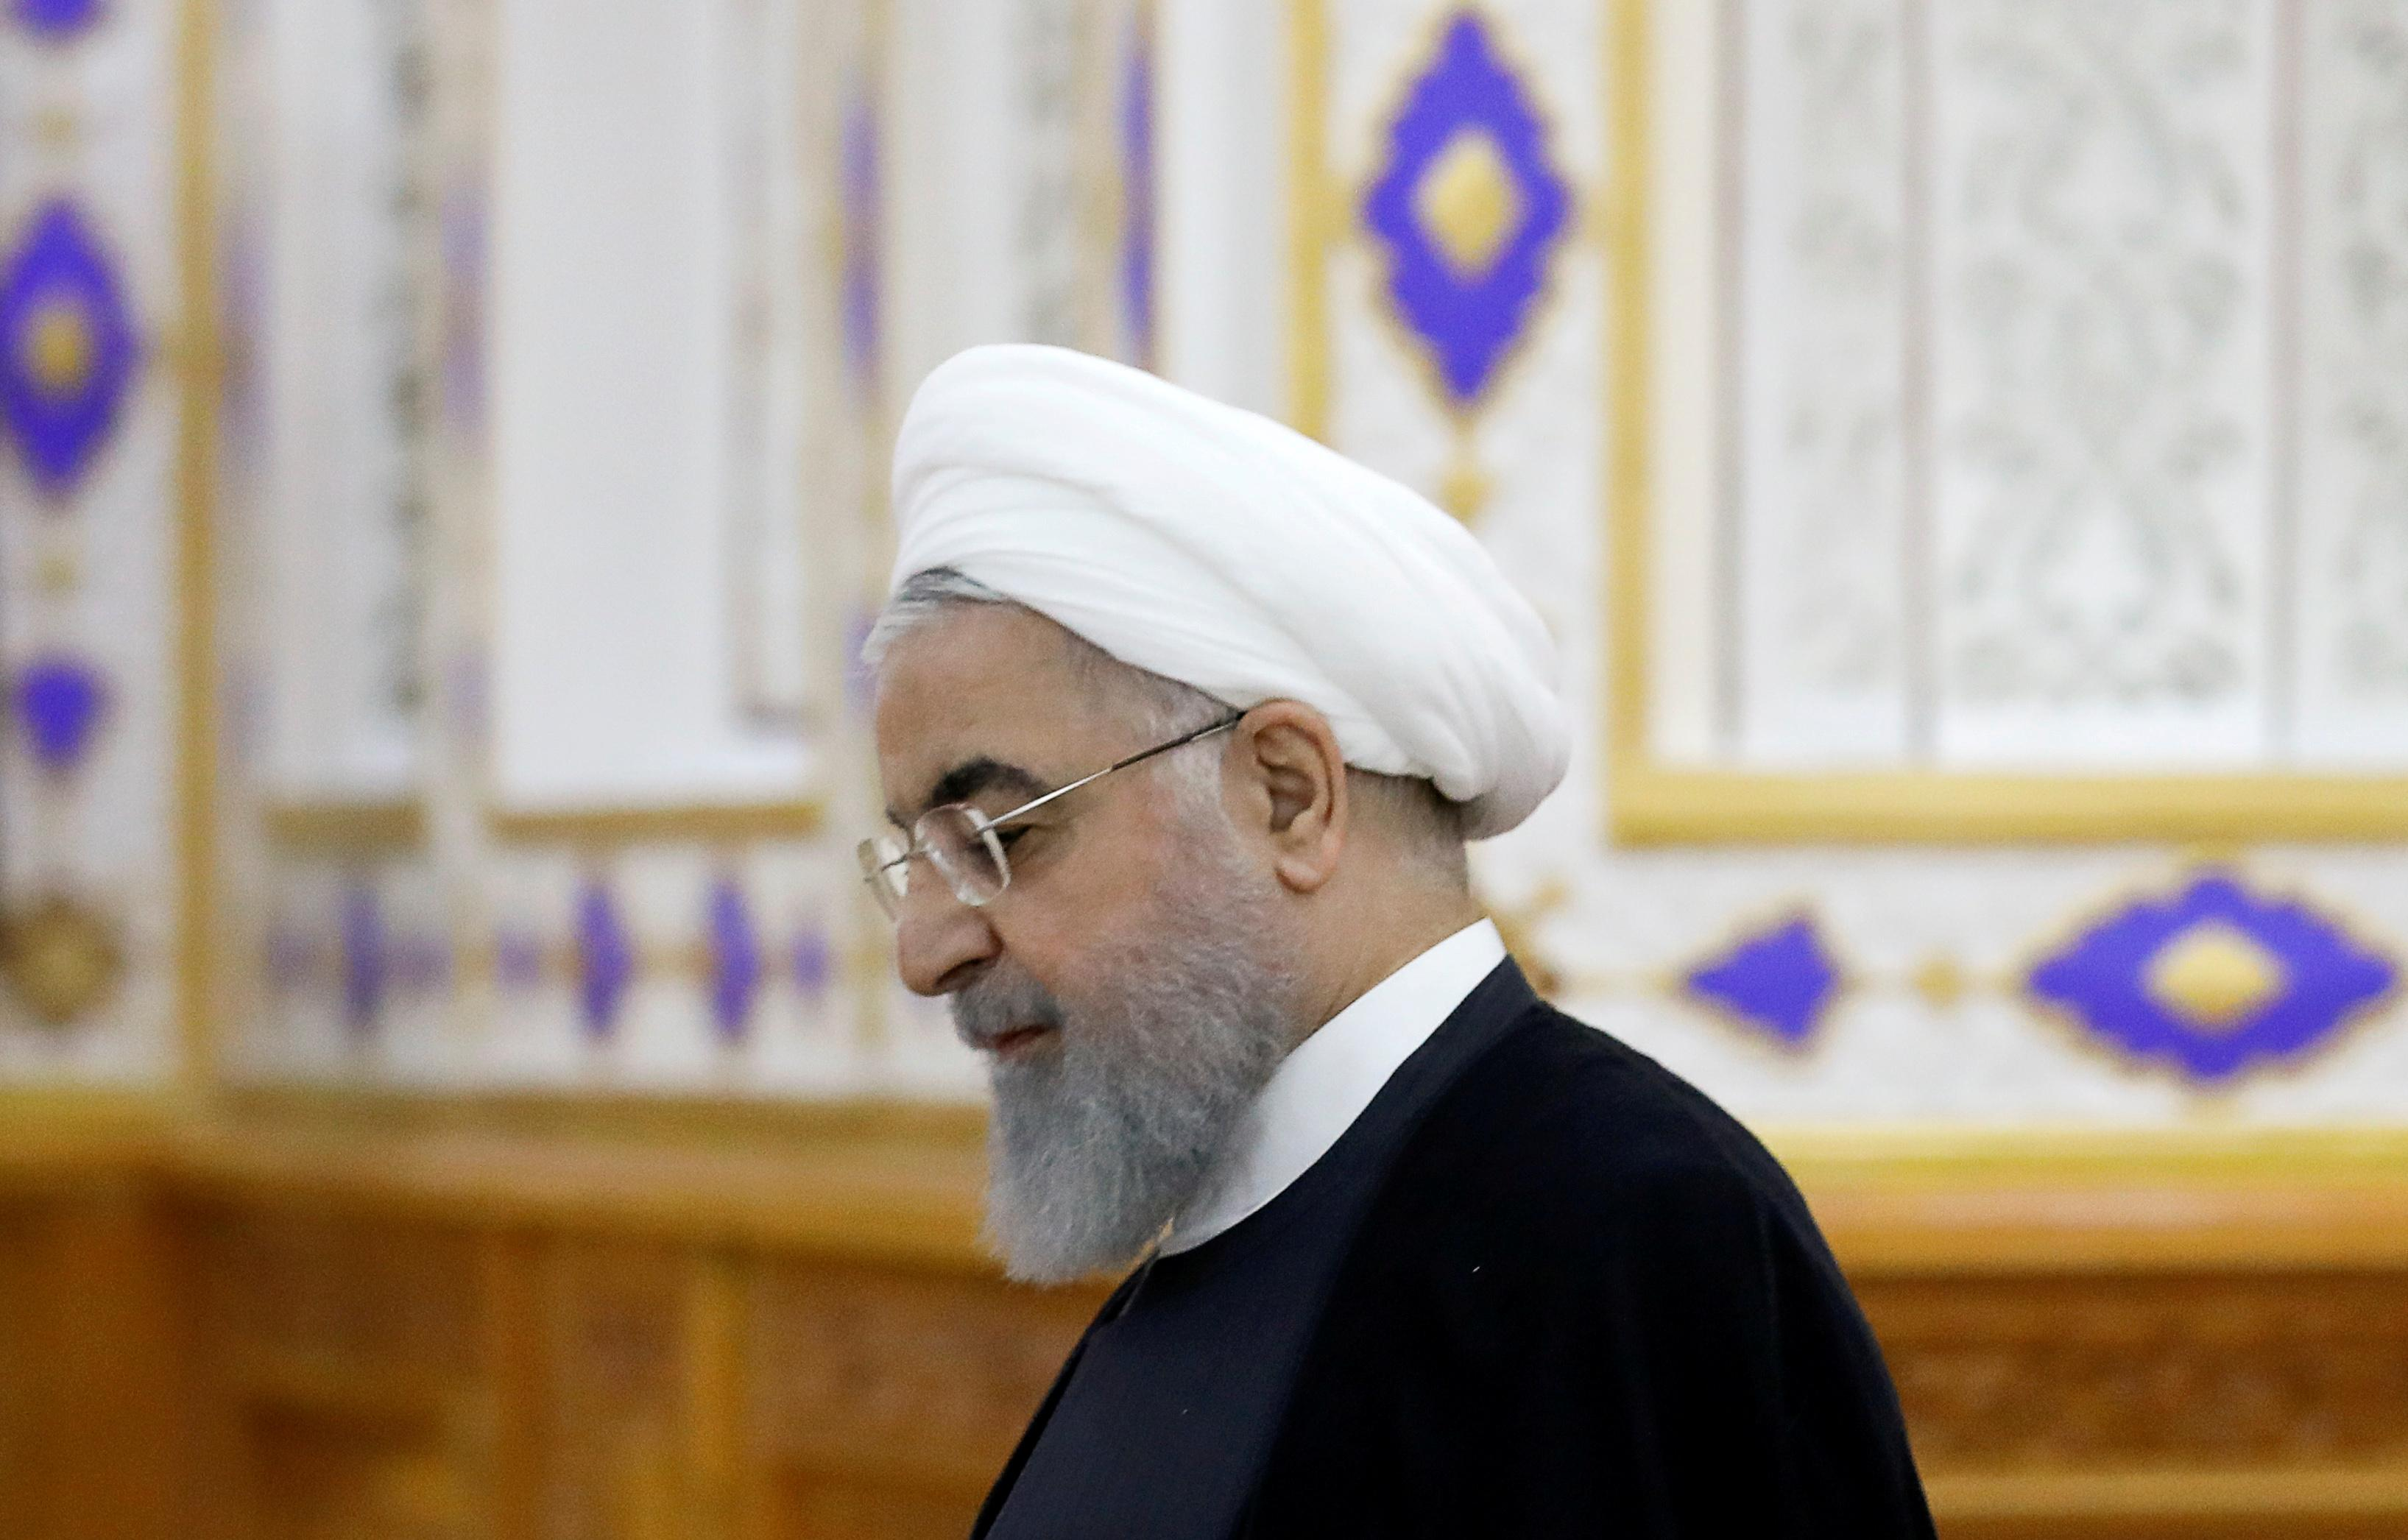 Iran's Rouhani tells France's Macron: no talks with U.S. while sanctions in place